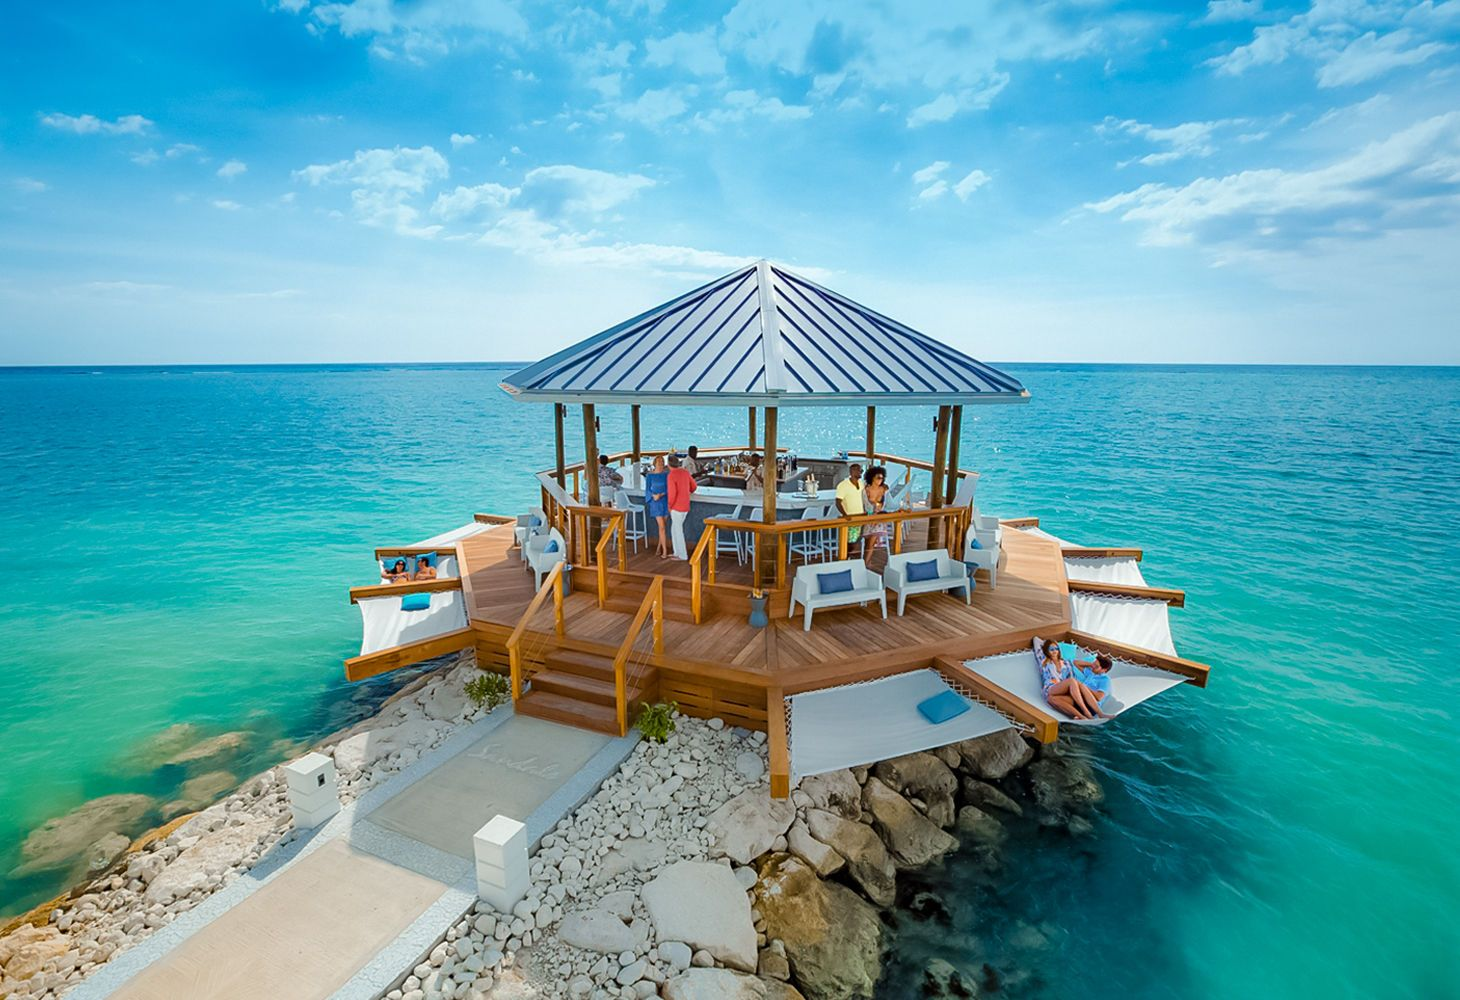 over-the-water bar at Sandals South Coast